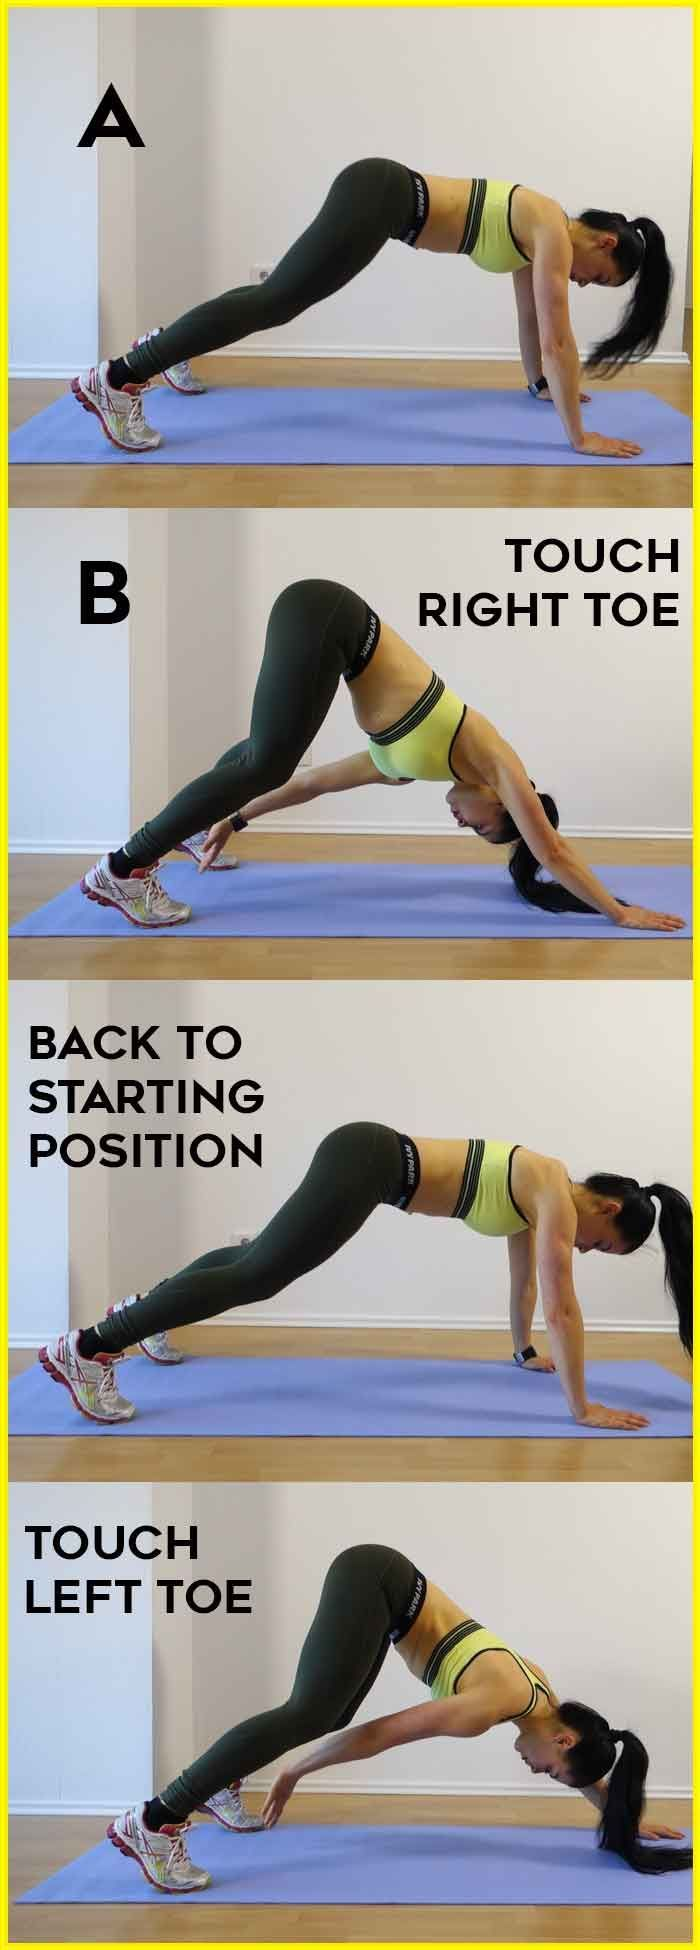 Before you do anything in life, you must always have a plan. Especially if it's a major goal. In this case, you want to get a smaller waist and flat stomach. You must have a well designed workout plan that will help get you results. This 28 day small waist and flat stomach challenge has … Read More ?